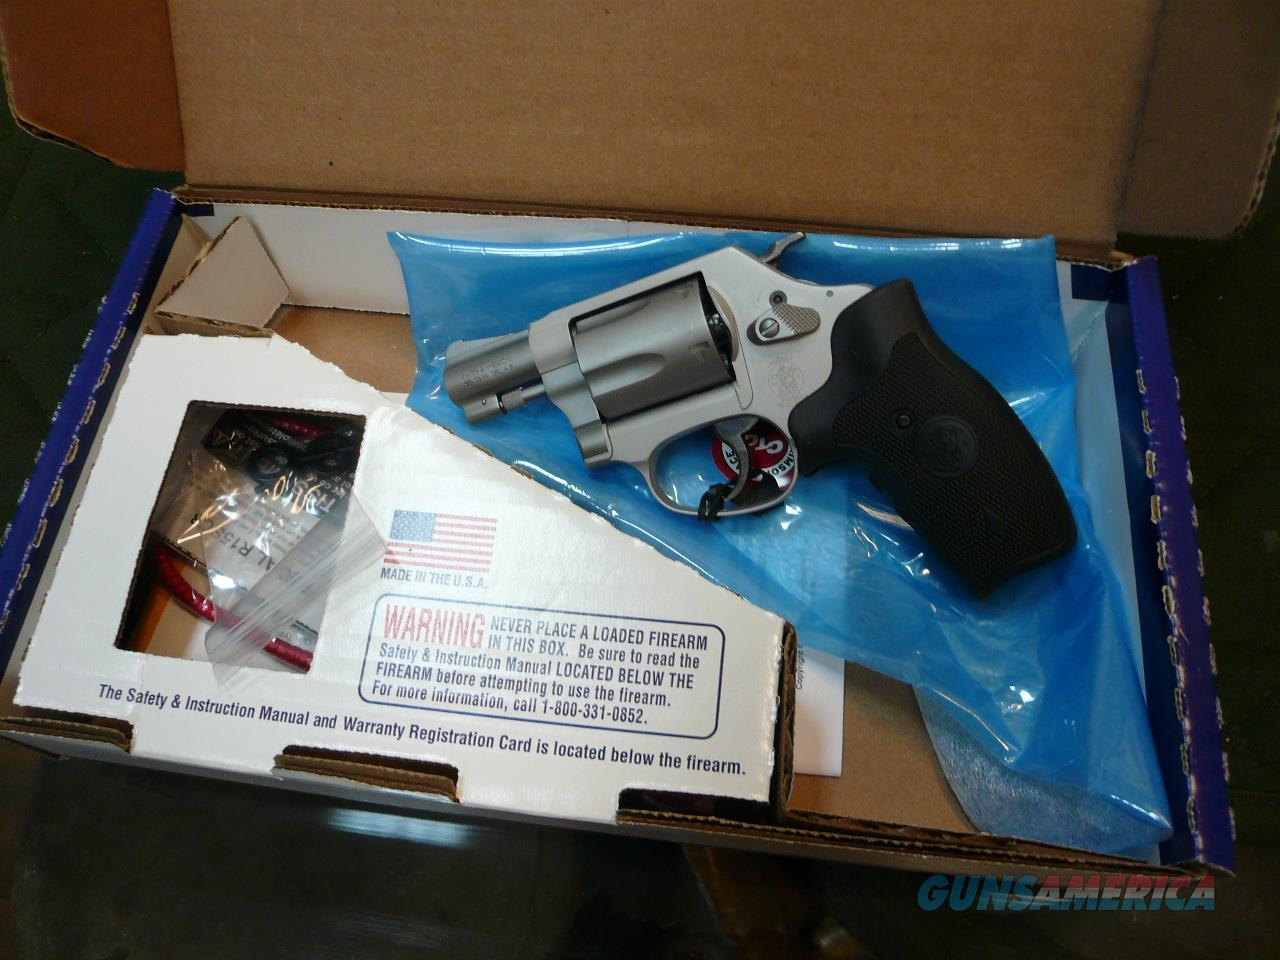 637-2 w/laser grip 38spl+p  Guns > Pistols > Smith & Wesson Revolvers > Full Frame Revolver